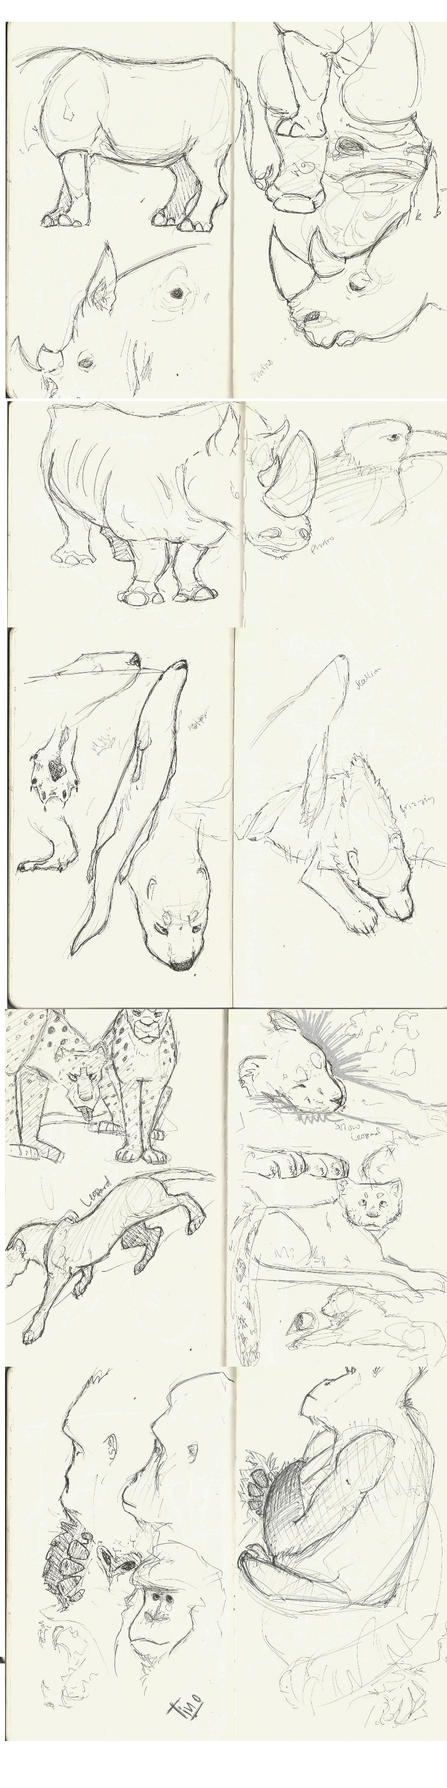 Zoo Pages 2 by Skybird16